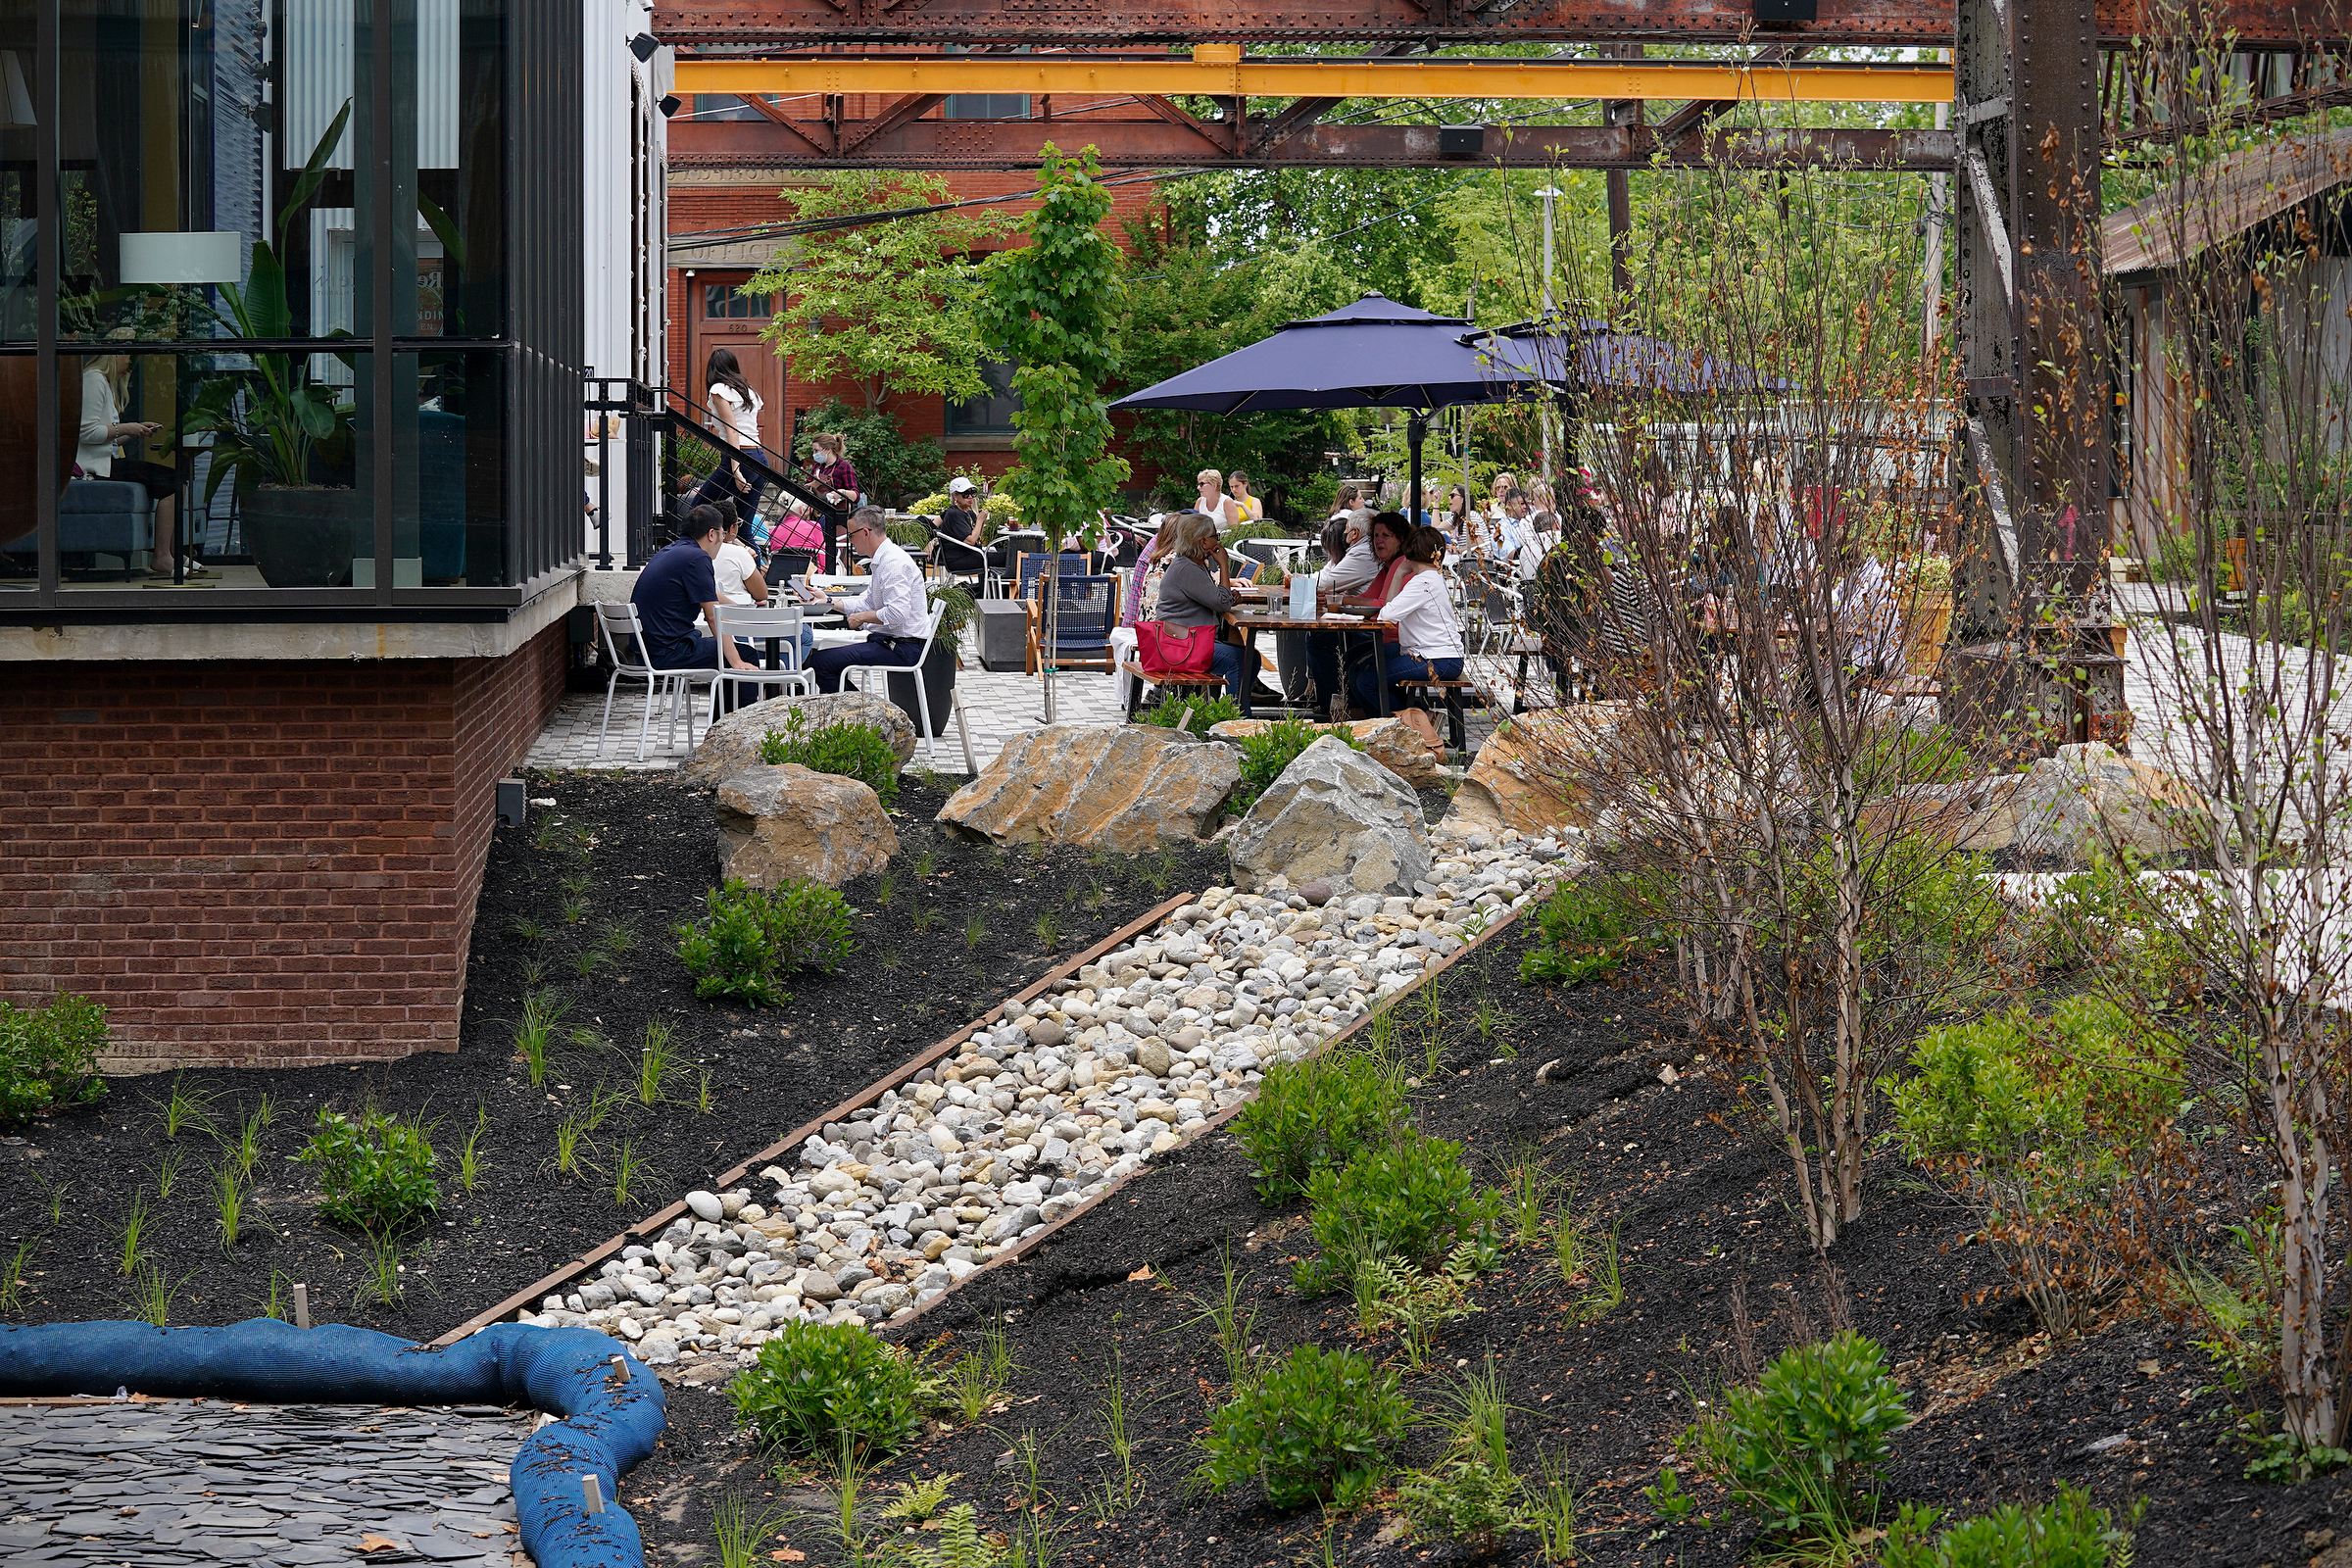 A rain garden is pictured at the Ironworks at Pencoyd Landing in Bala Cynwyd, Pa., on Wednesday, June 2, 2021. The new development, which opened earlier this year with a restaurant and hotel, is located on the site of the former Pencoyd Iron Works along the Schuylkill.